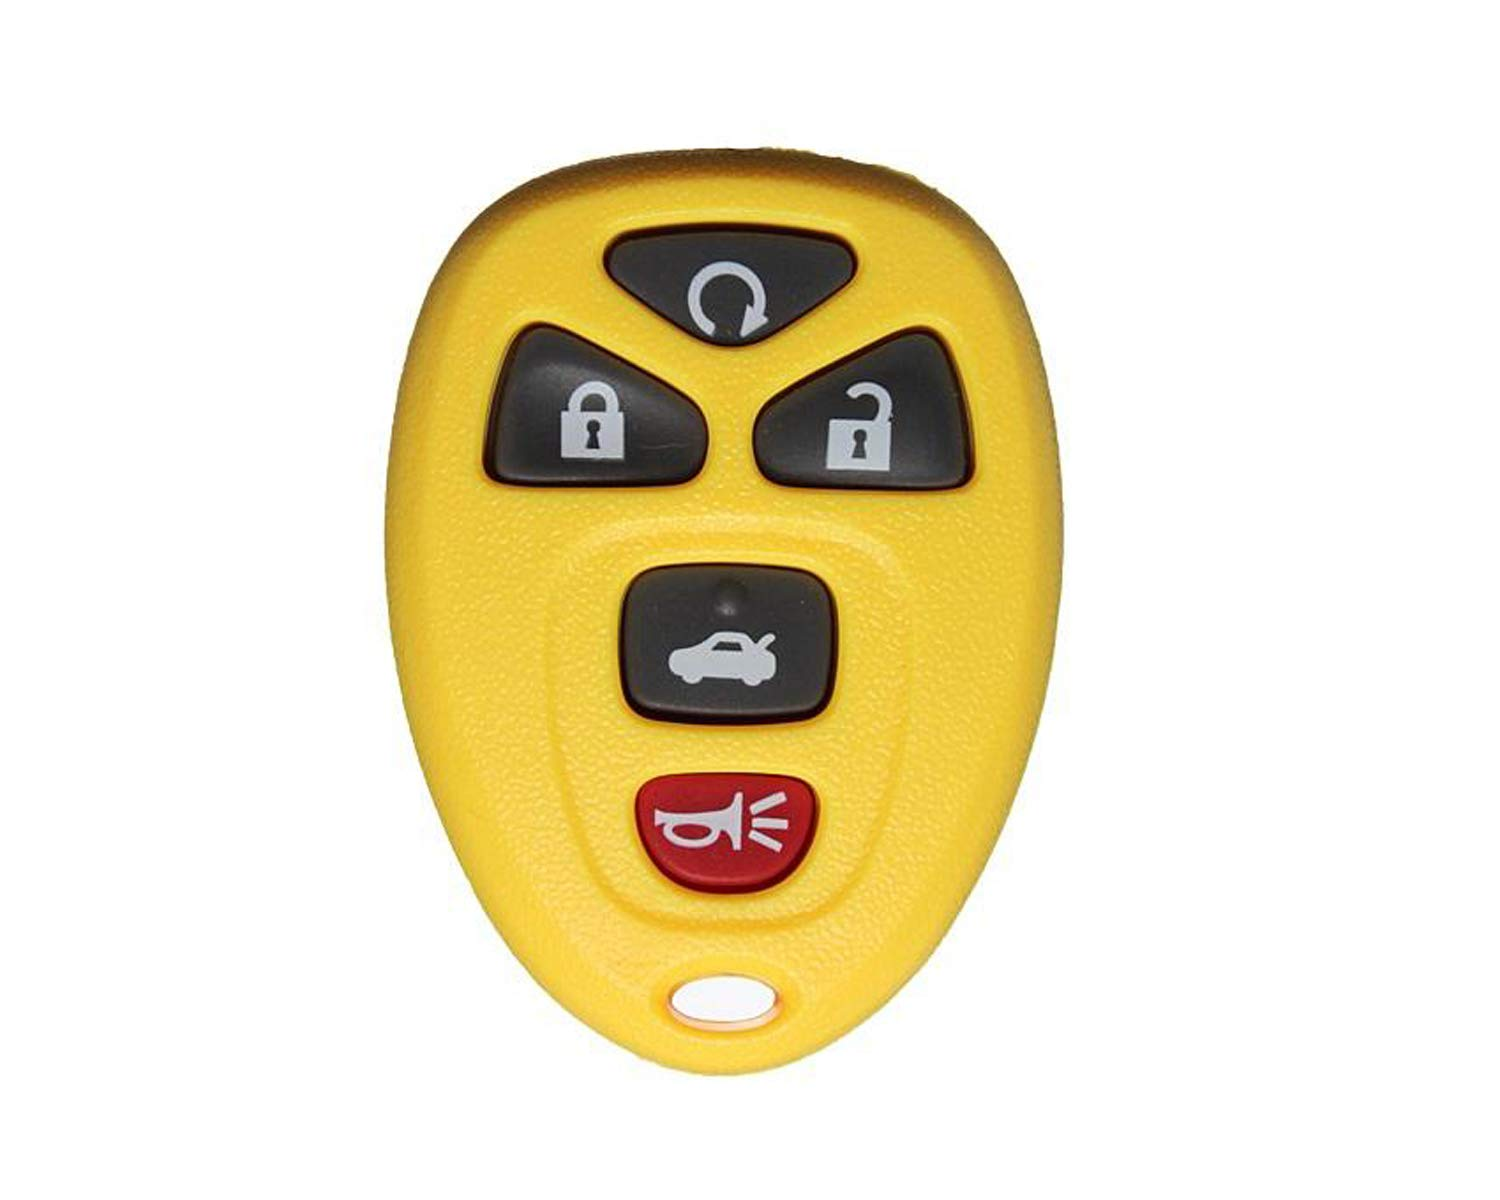 1 New Replacement YELLOW Keyless Entry 5 Button Remote Start Car Key Fobs for Select GM Chevrolet Buick Pontiac and Saturn Vehicles 22733524 CanadaAutomotiveSupply /©